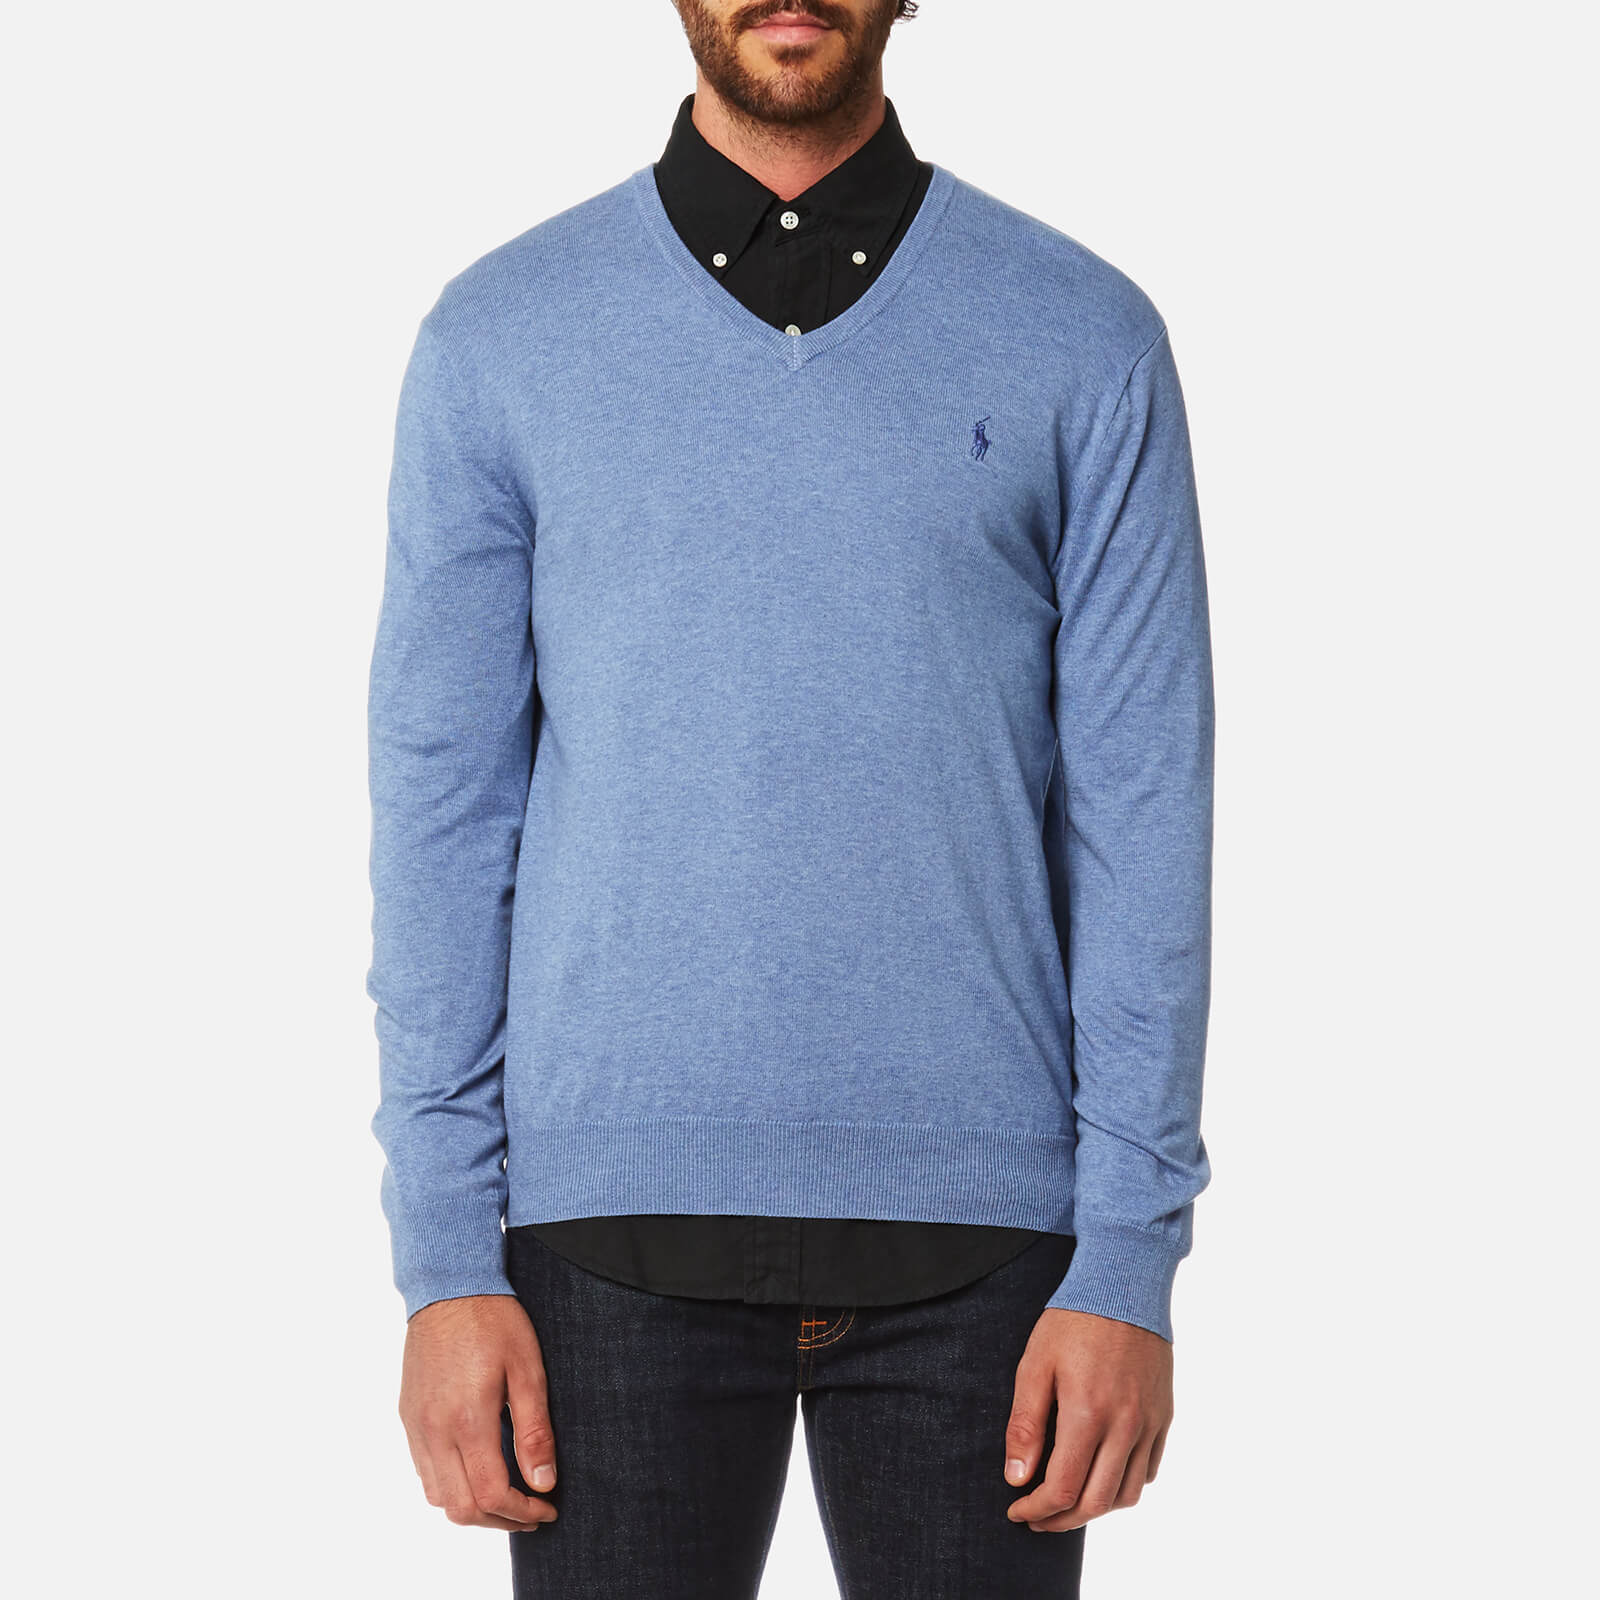 81fe405749c Polo Ralph Lauren Men's Pima Cotton V-Neck Knitted Jumper - Campus Blue  Heather